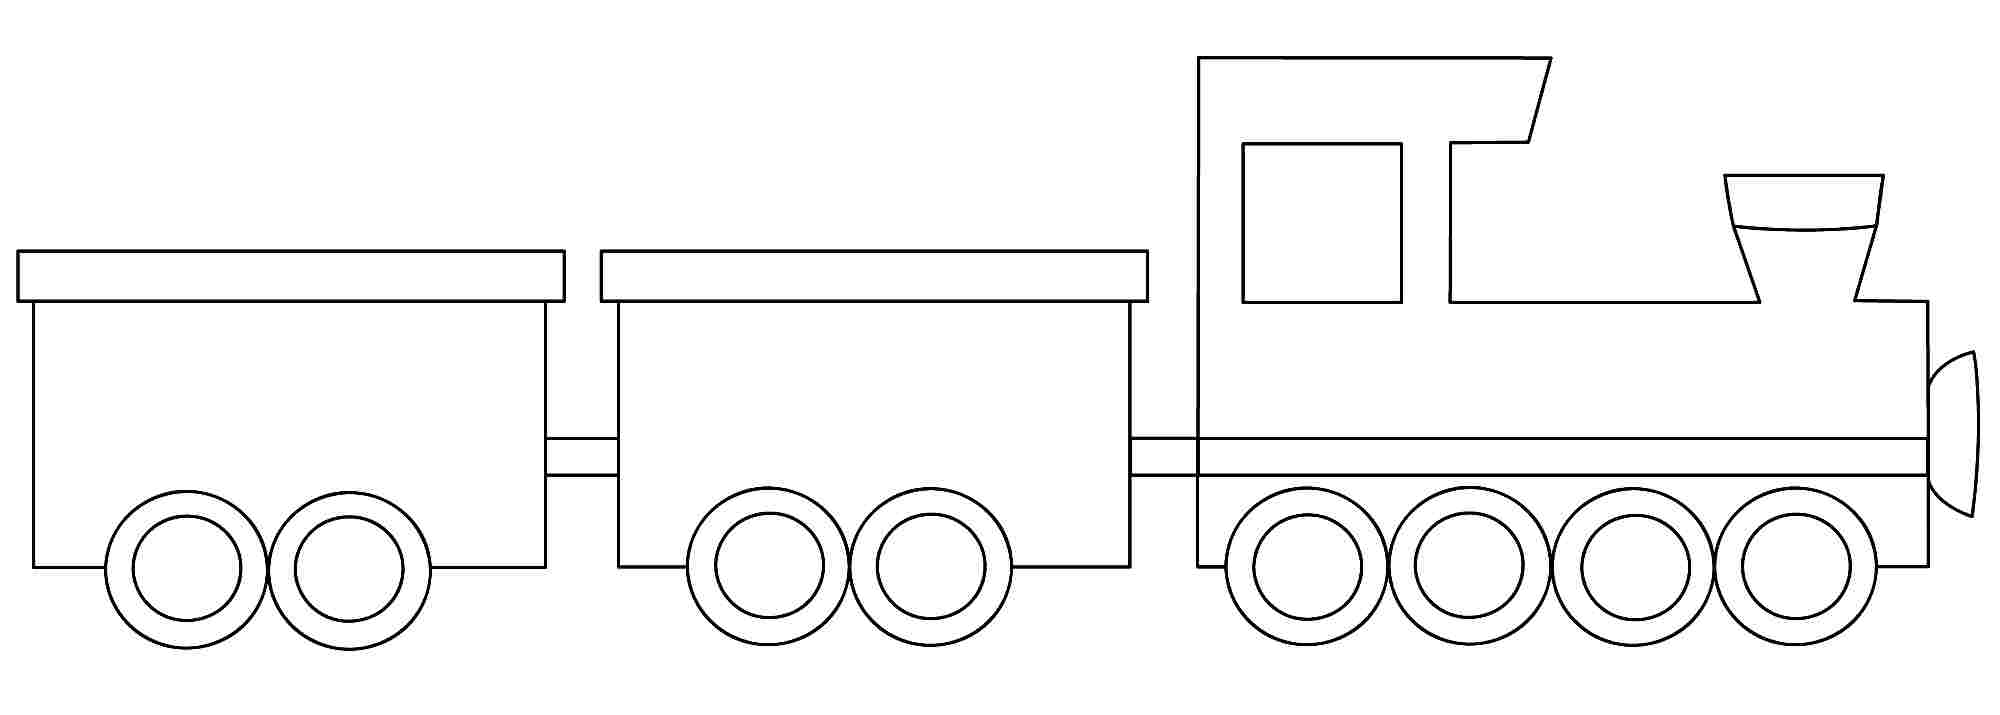 train printables coloring pages - photo#18